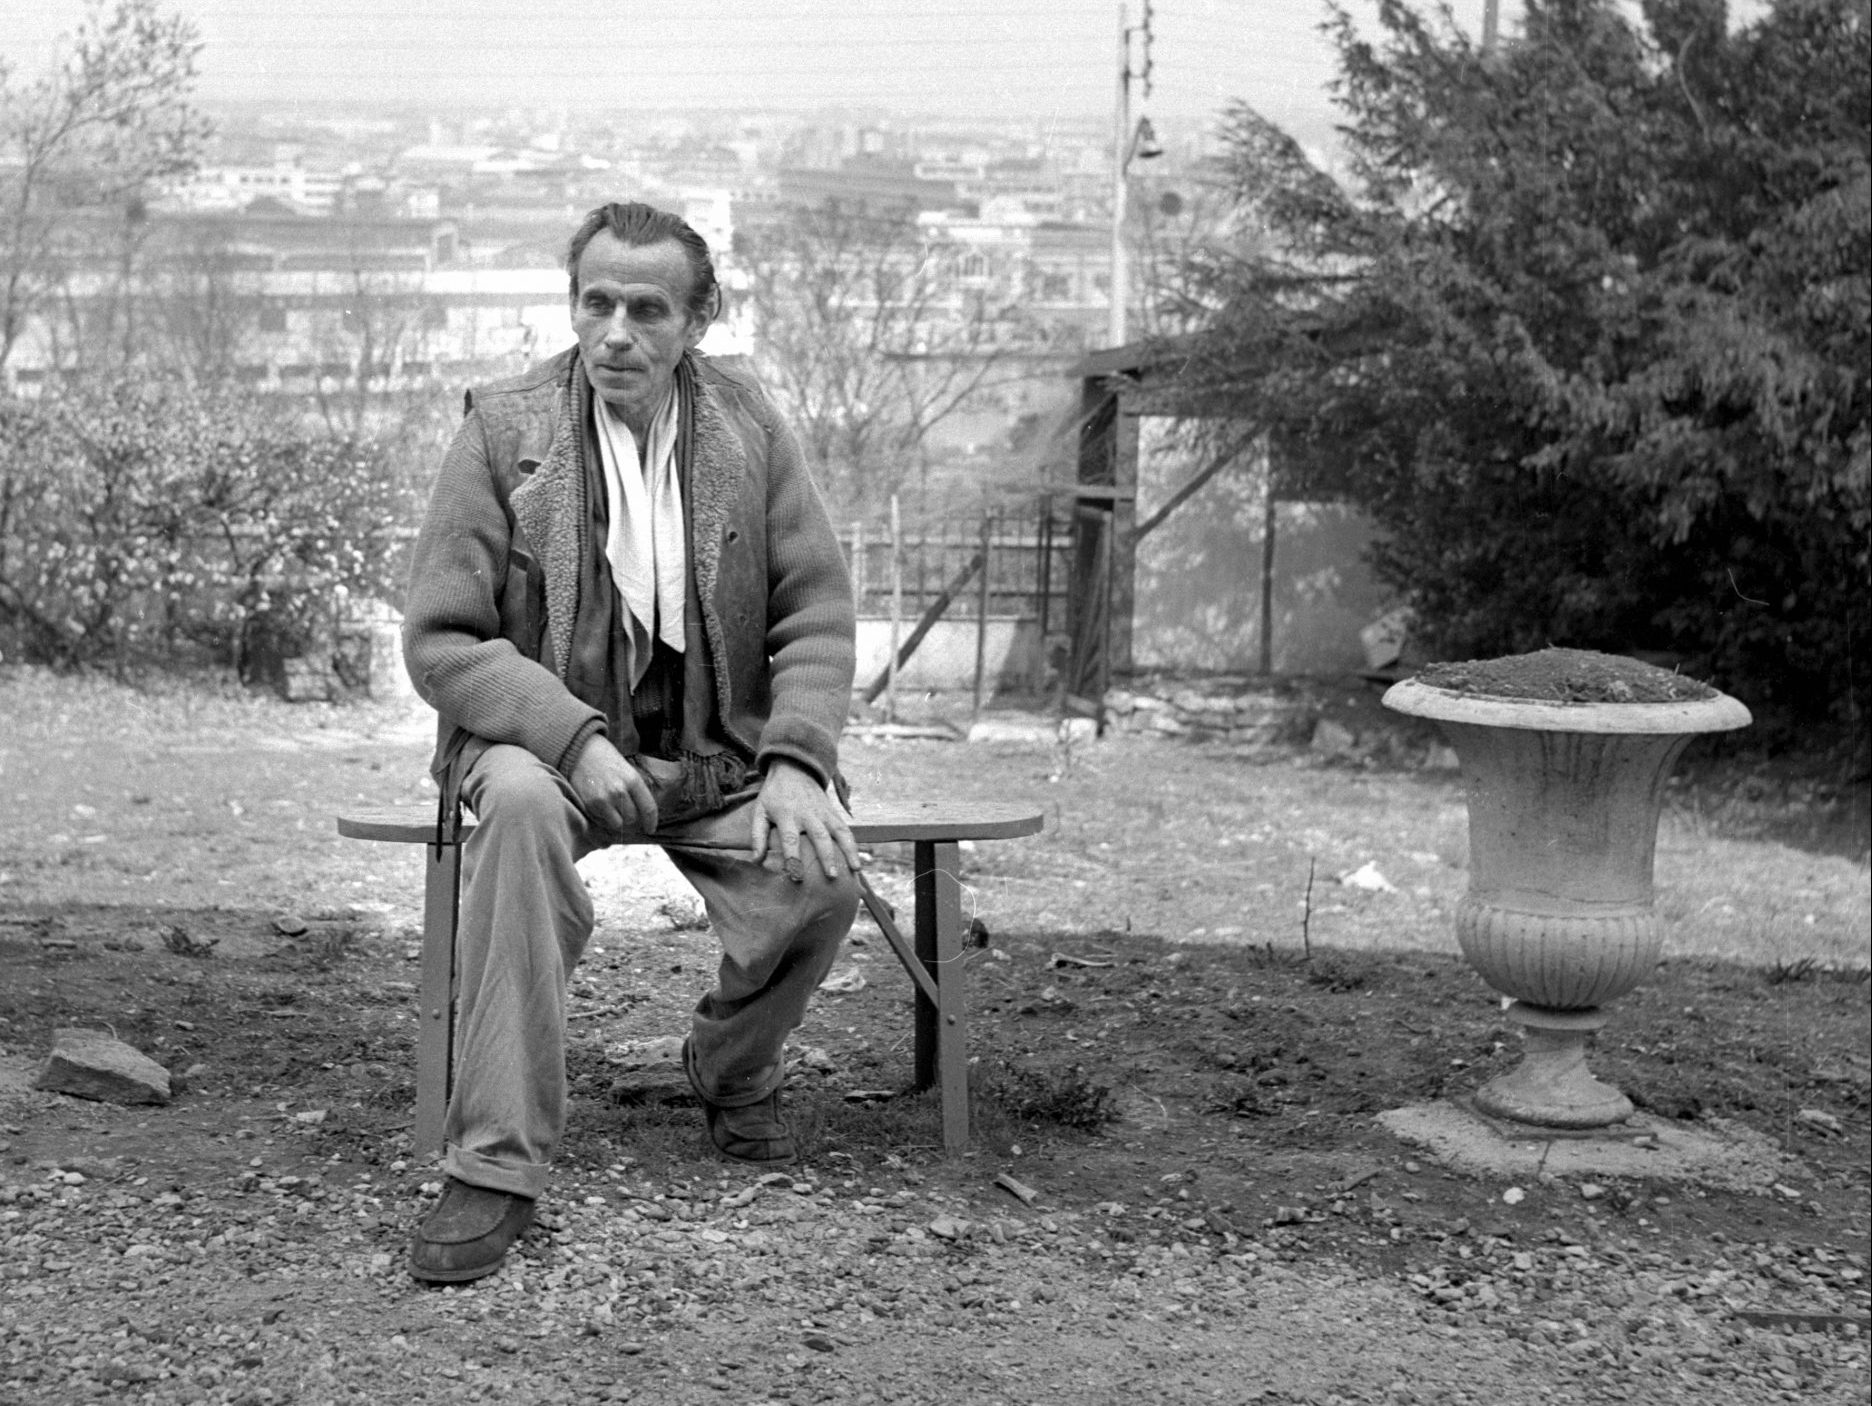 Louis-Ferdinand Destouches, aka Celine in Meudon, a Paris suburb, in 1955. The writer and his wife settled there after he returned to France, having fled at the end of the war. Credit: Roger Viollet via Getty Images